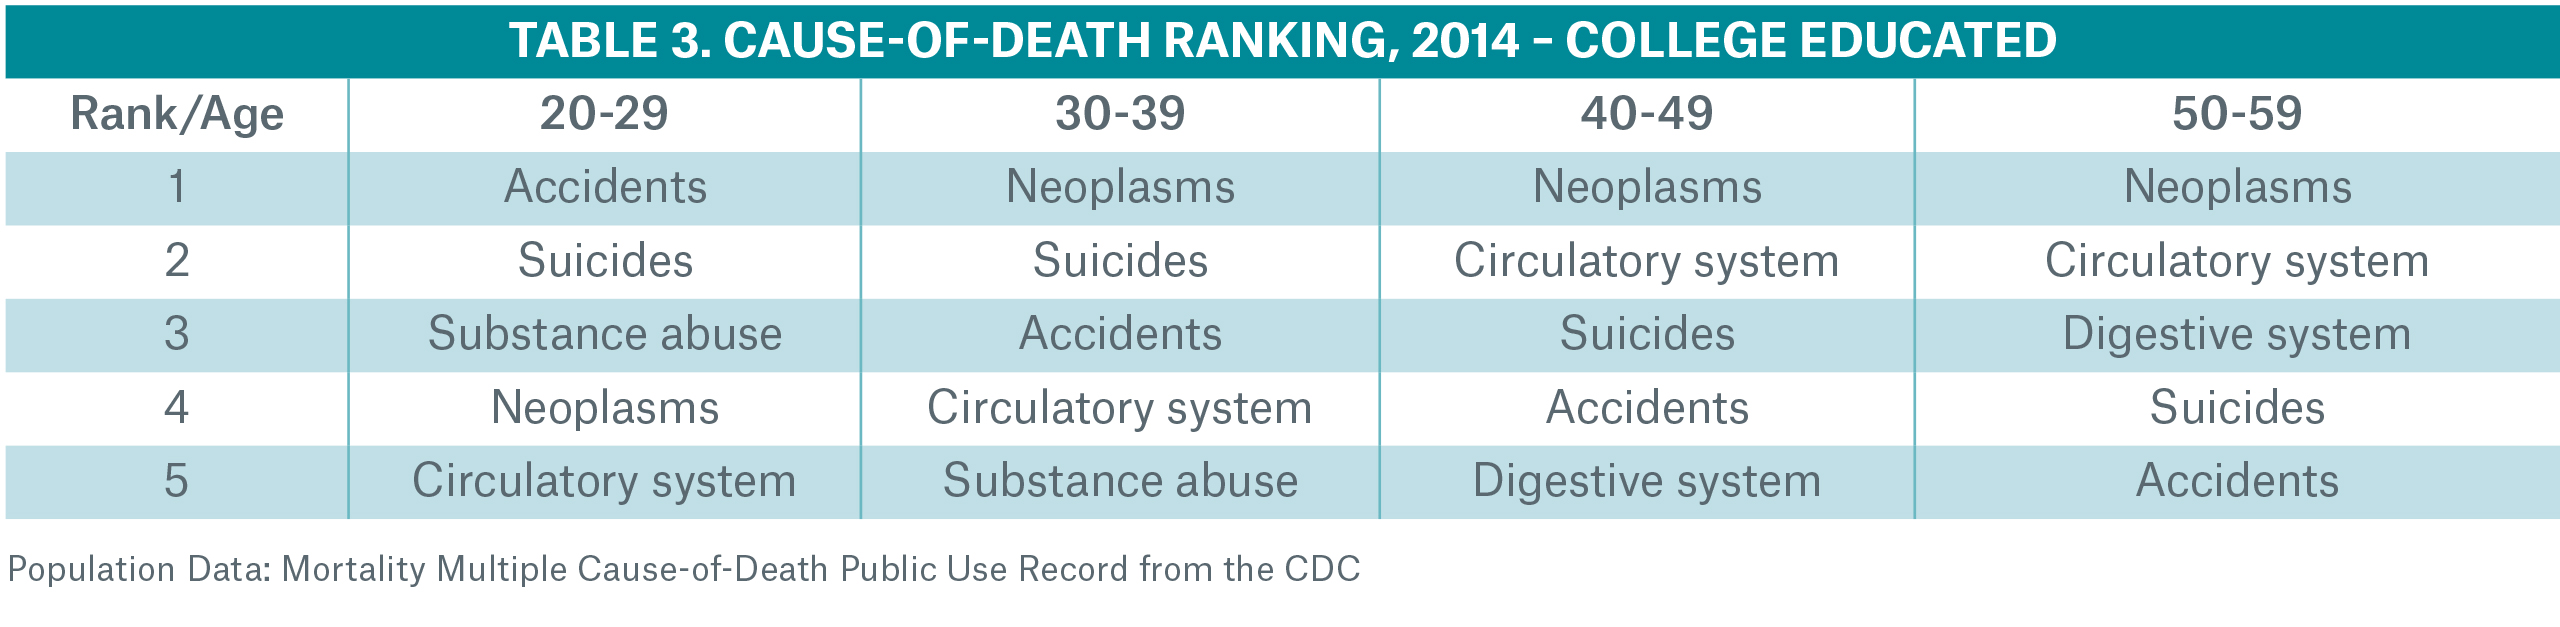 Cause of Death Rankings Table